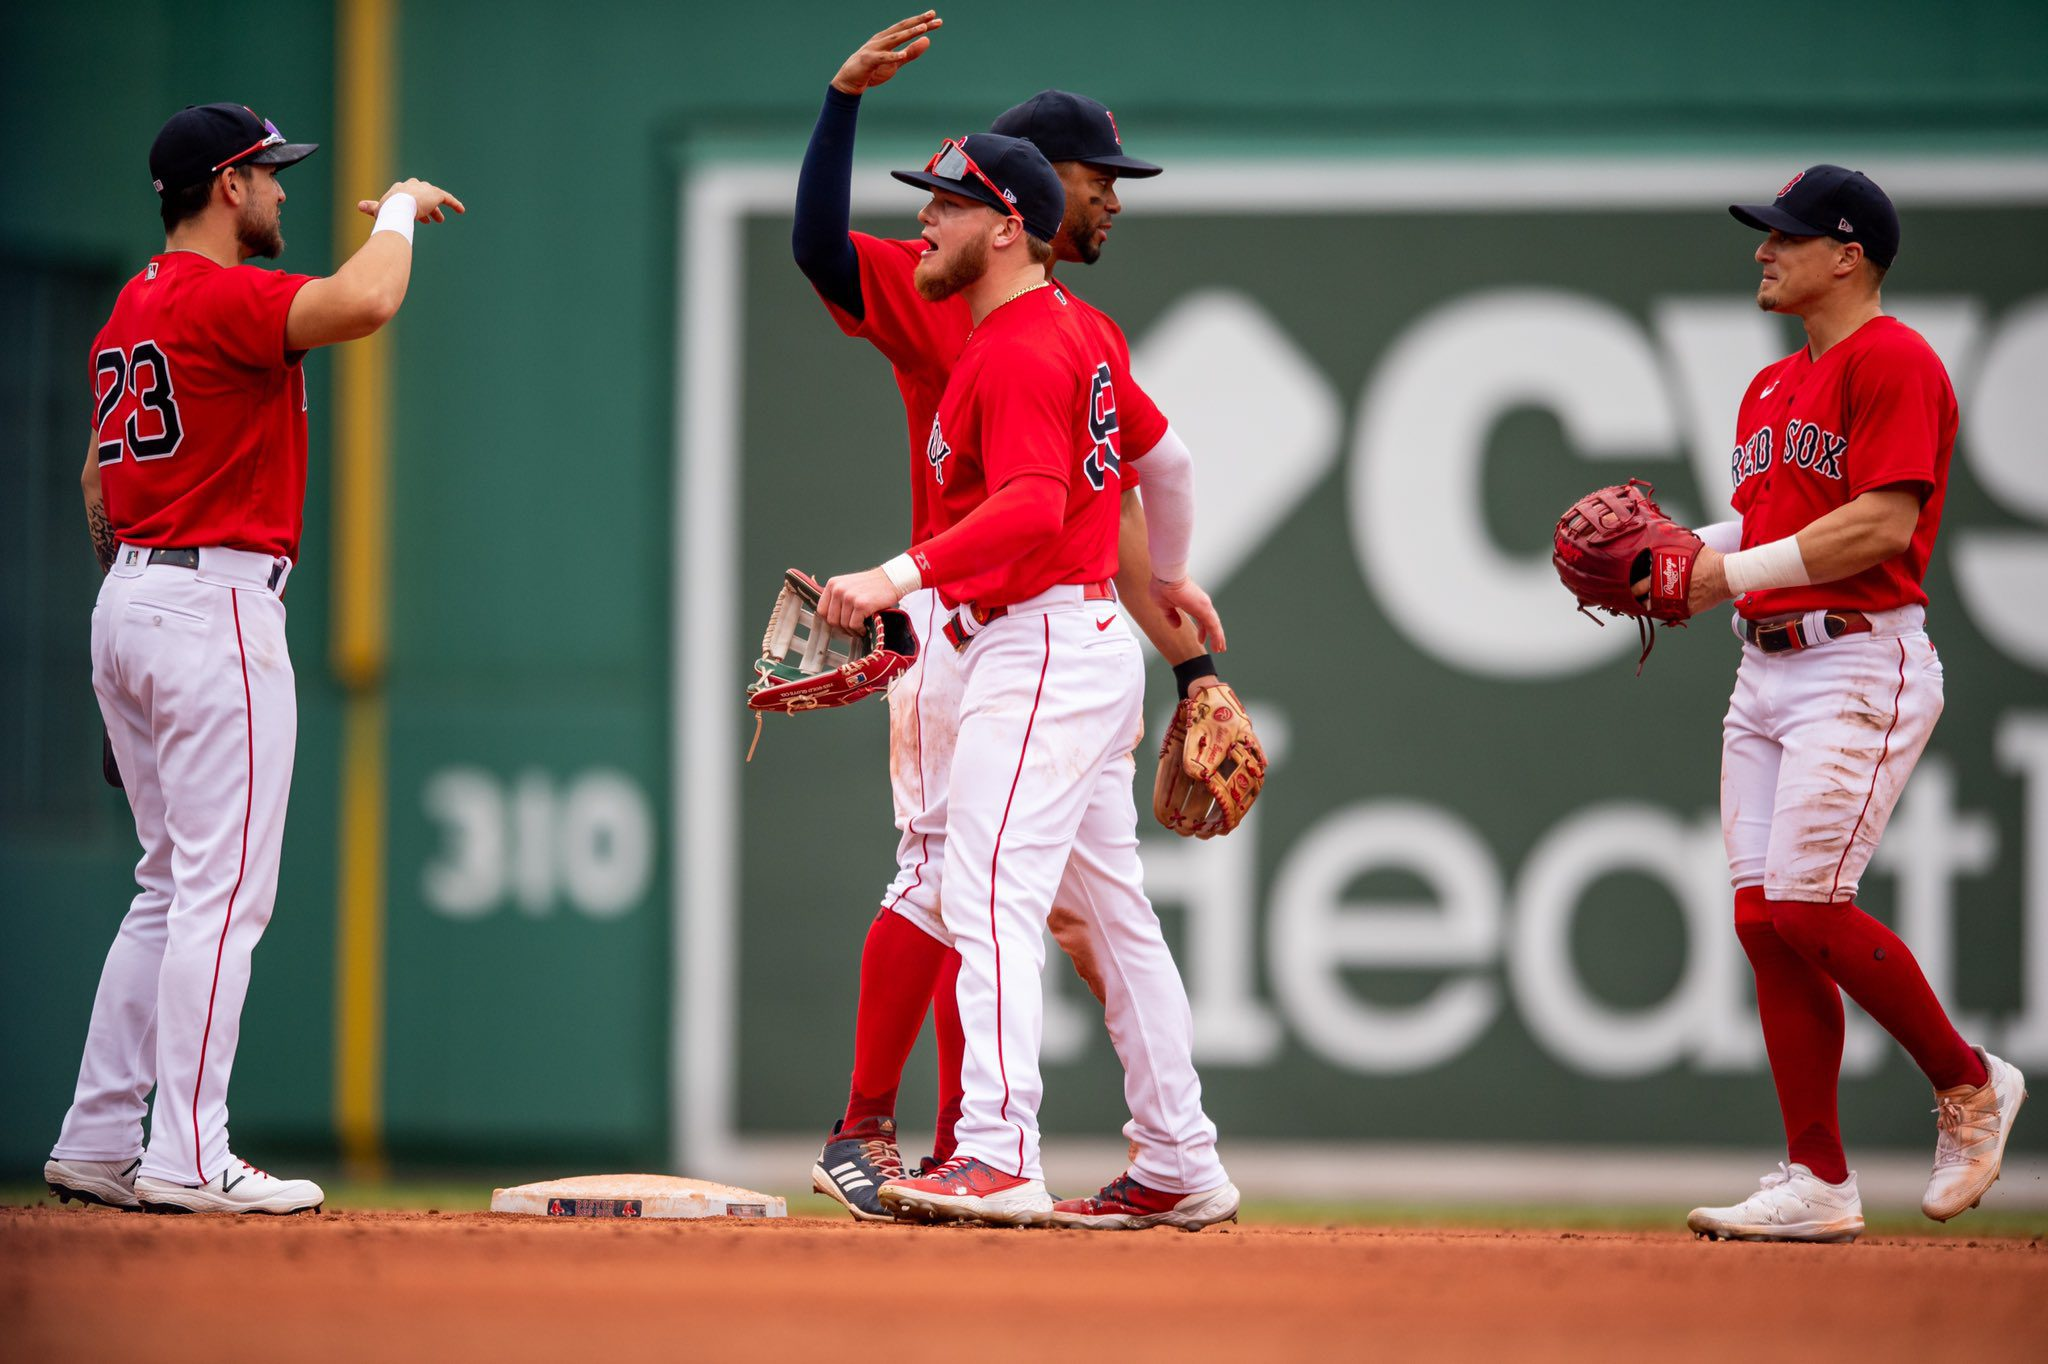 Boston Red Sox vs Toronto Blue Jays Predictions and Match Odds